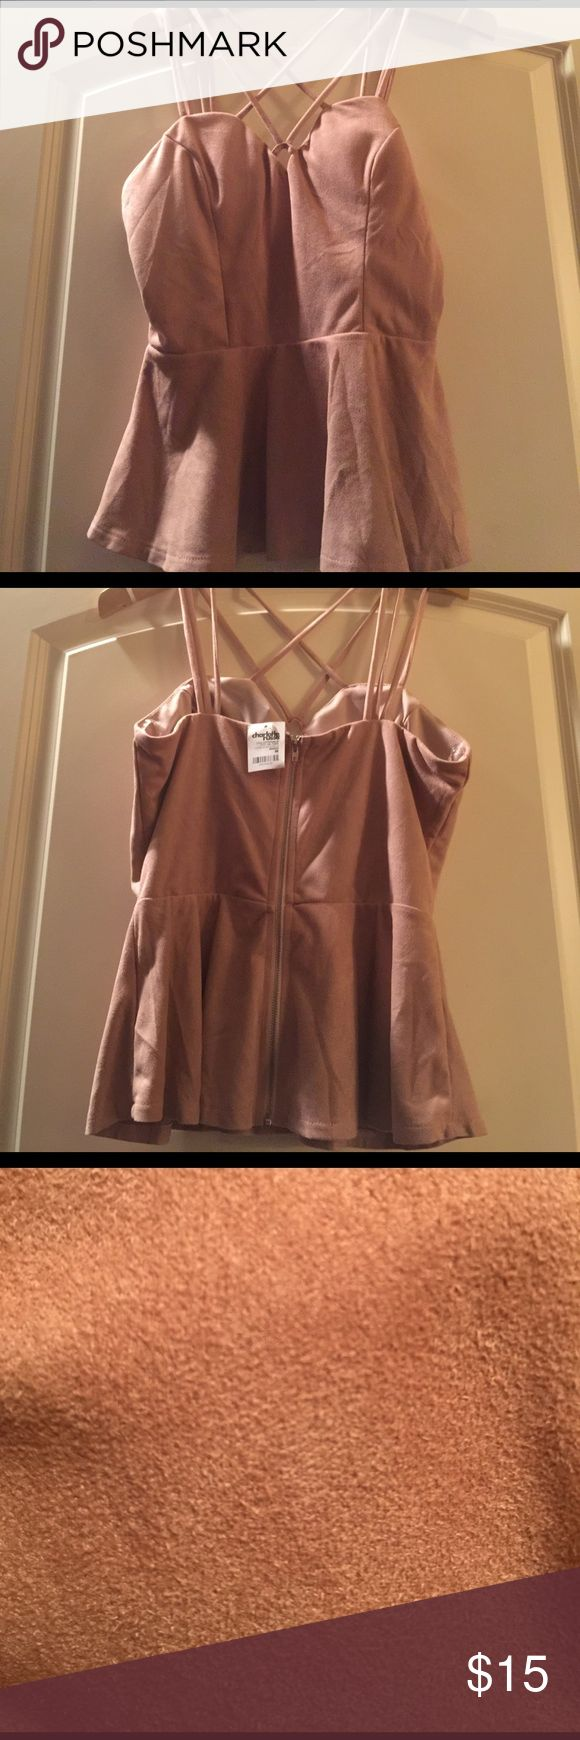 Charlotte Rousse mauve suede stewpot top NWT NWT soft faux suede stewpot top. Maybe color. Brand new Tops